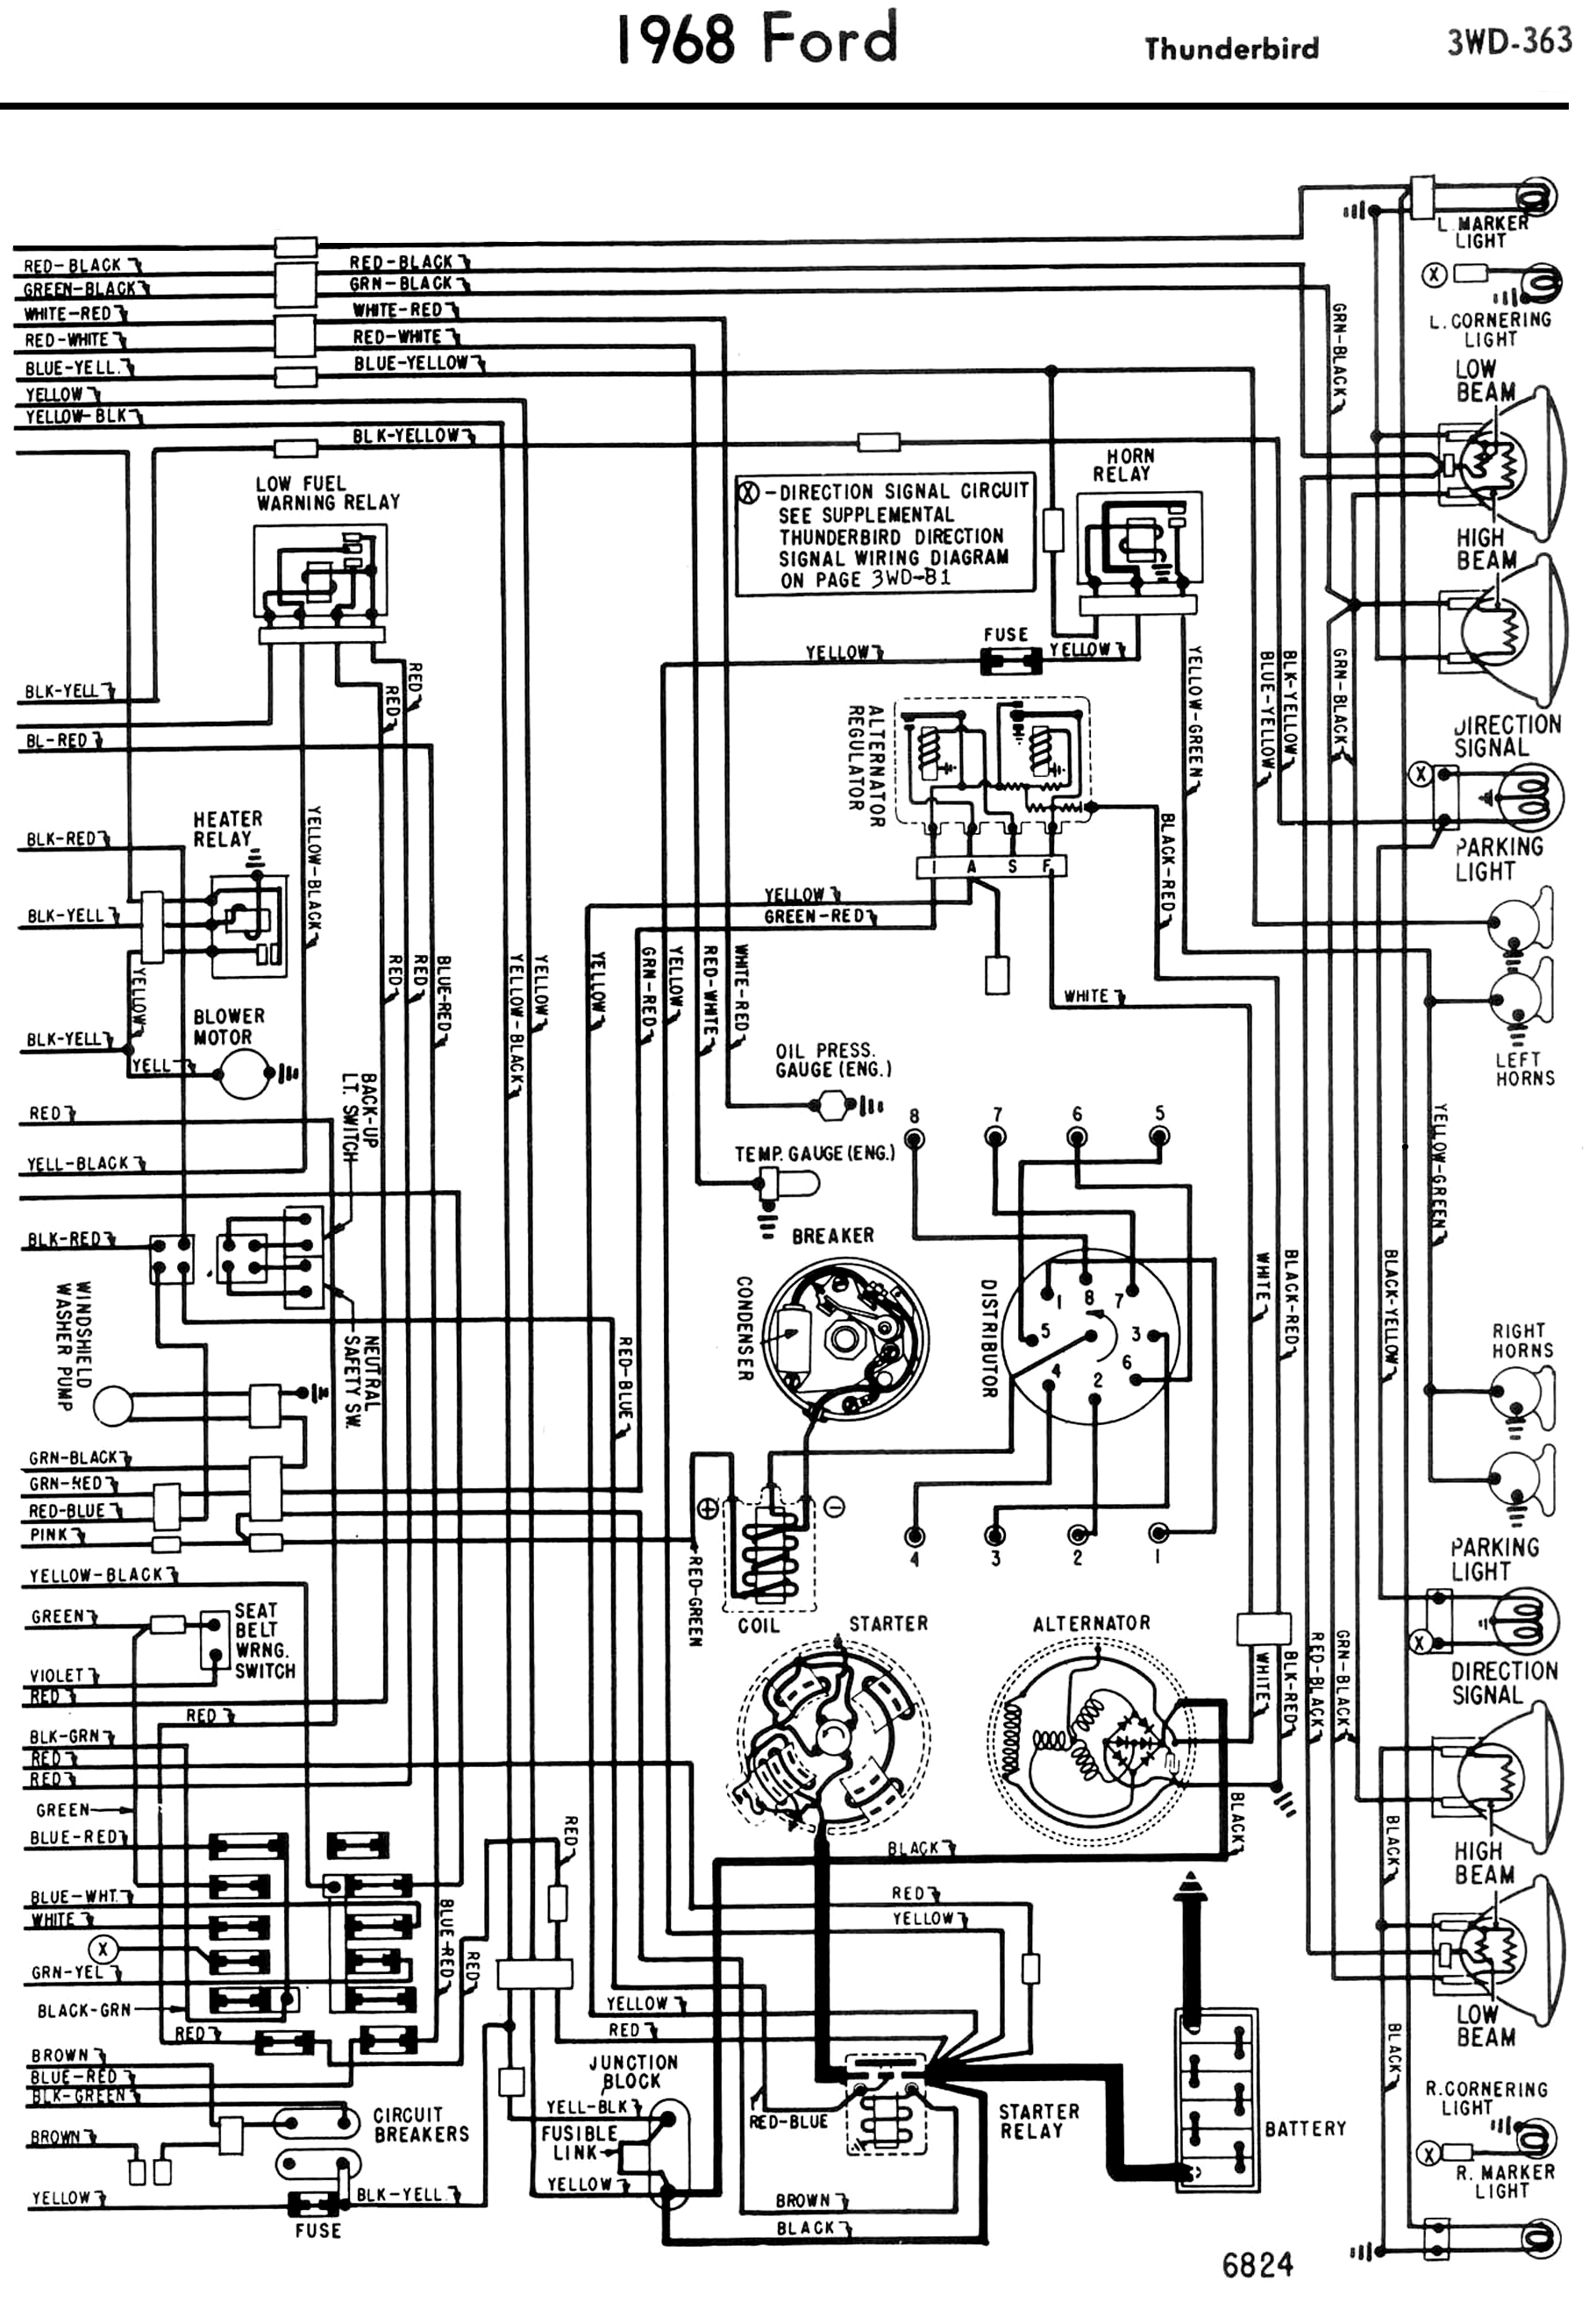 Jeep Jk Power Window Wiring Harness Library Electric Diagram For 2003 Ford Thunderbird Simple Rh David Huggett Co Uk 1962